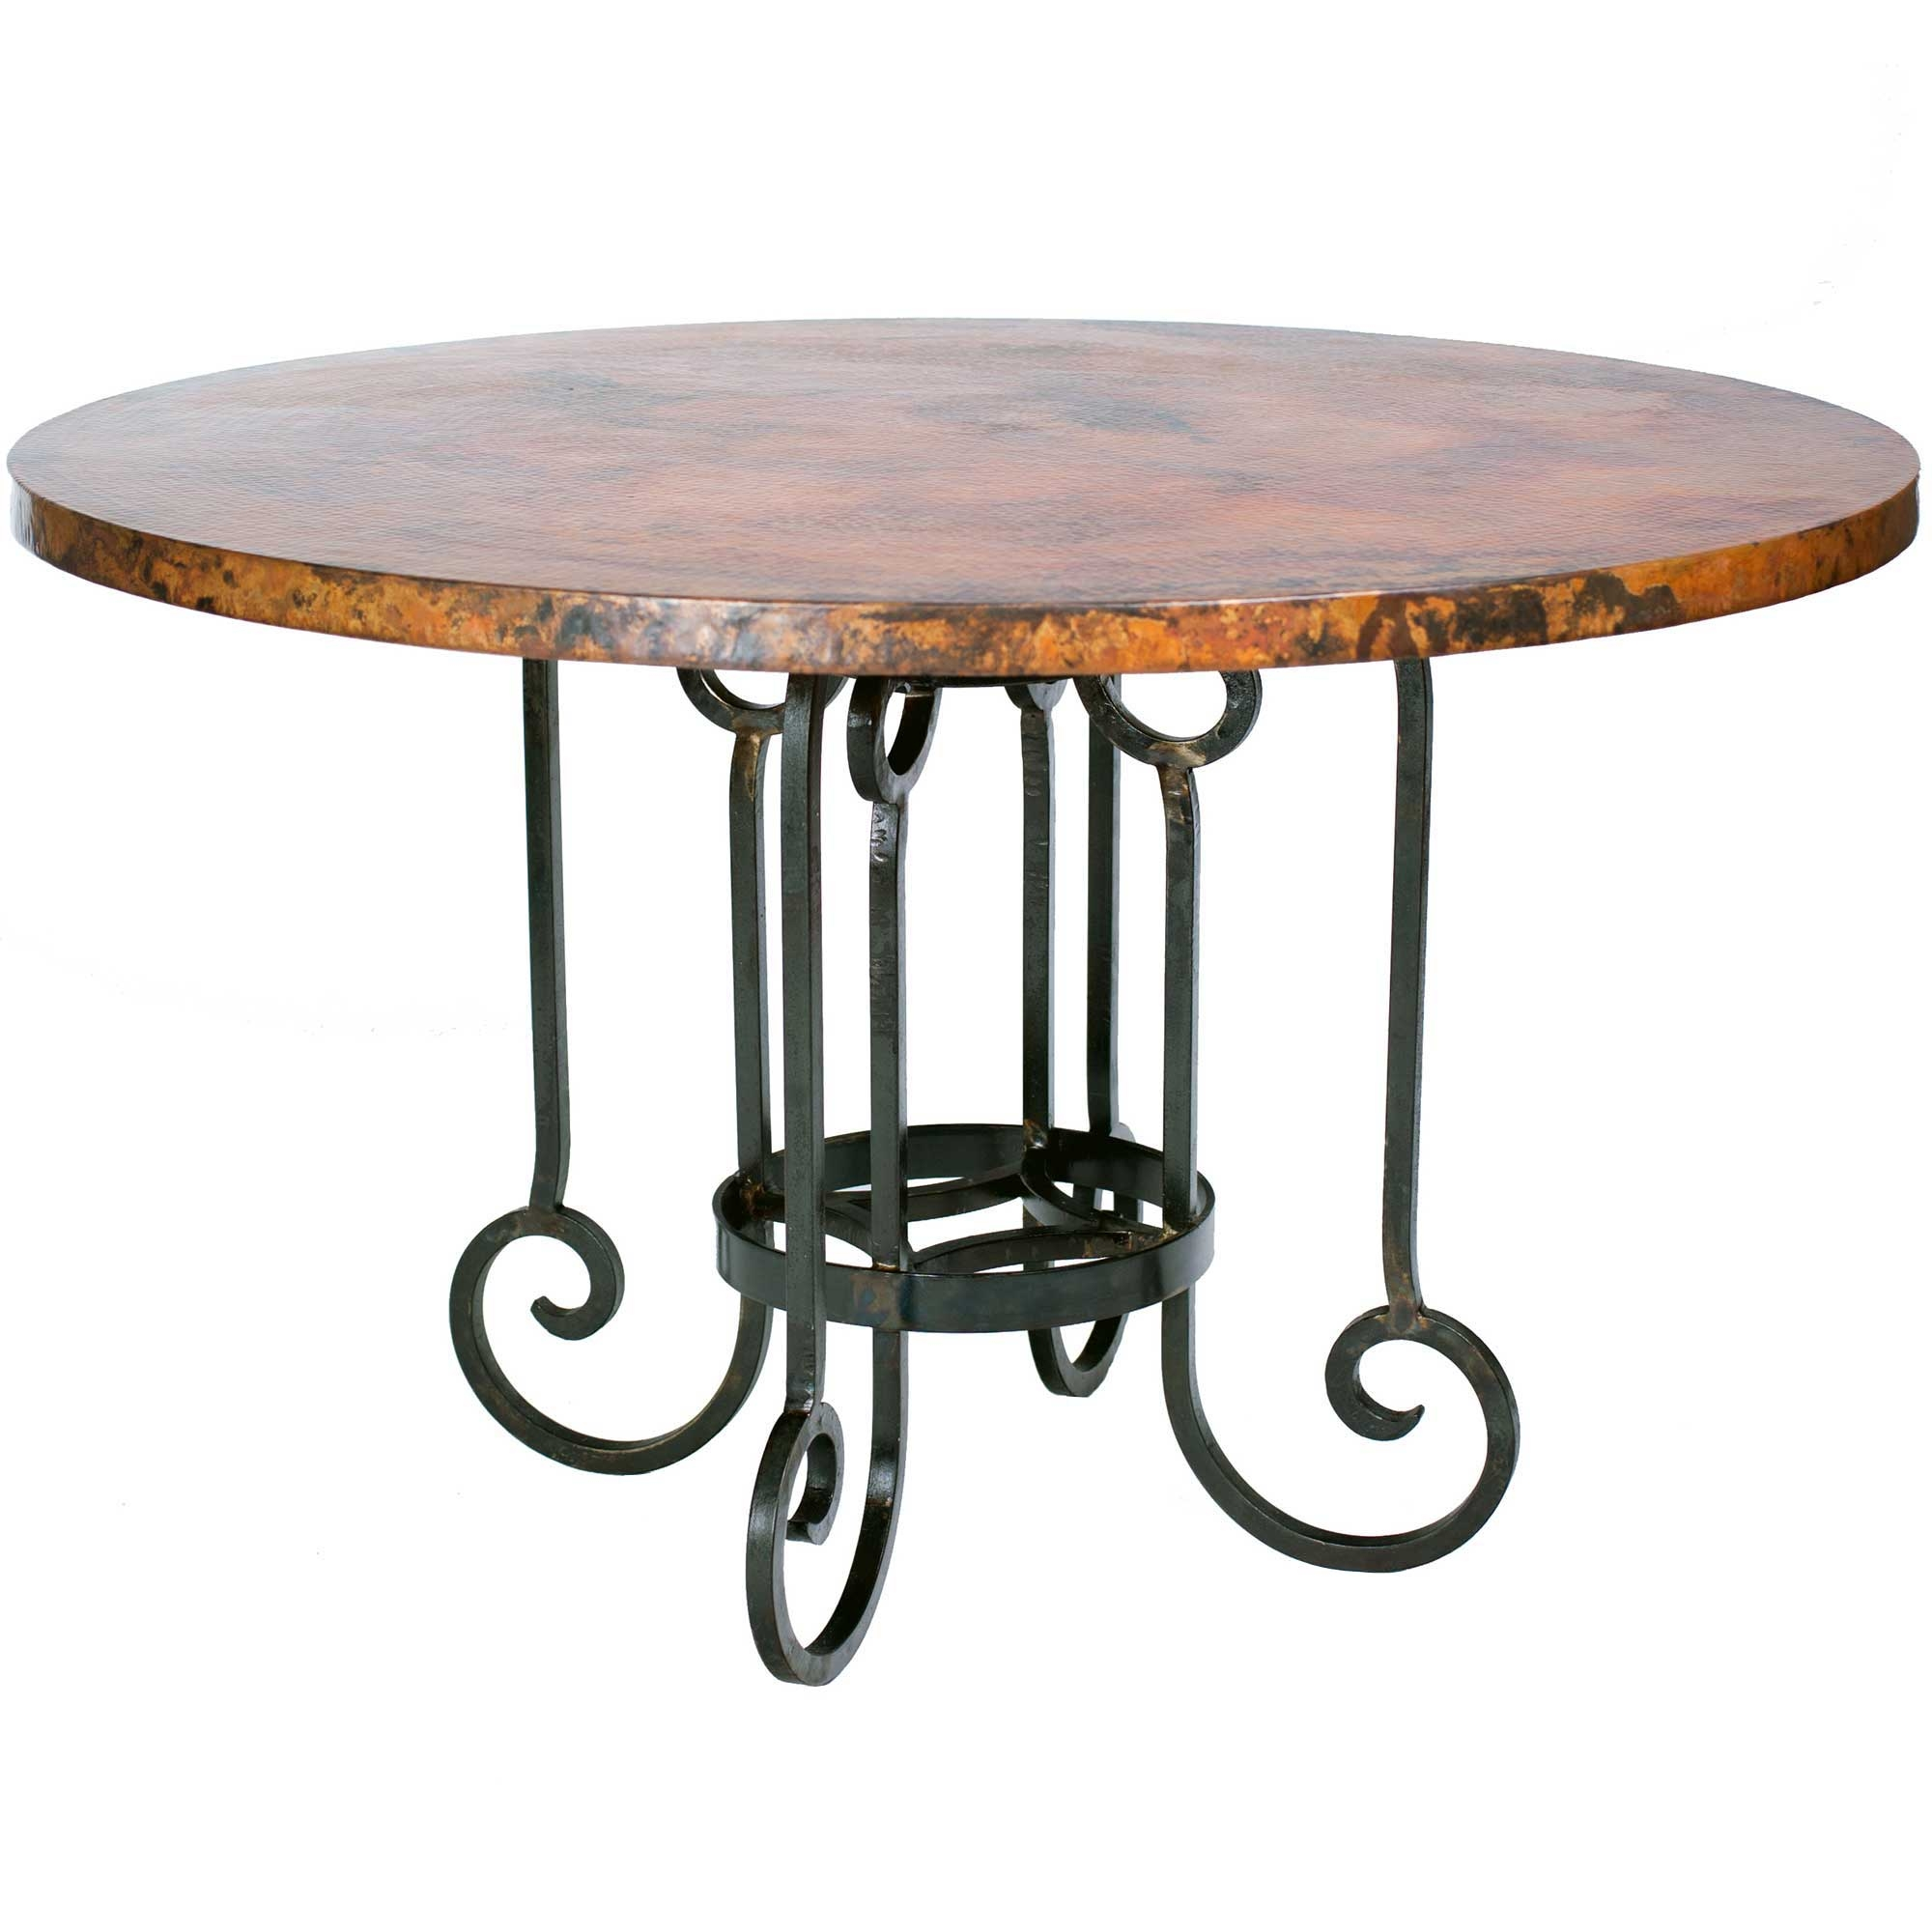 Pictured Here Is The Curled Leg Round Dining Table With Wrought Iron Base And 54